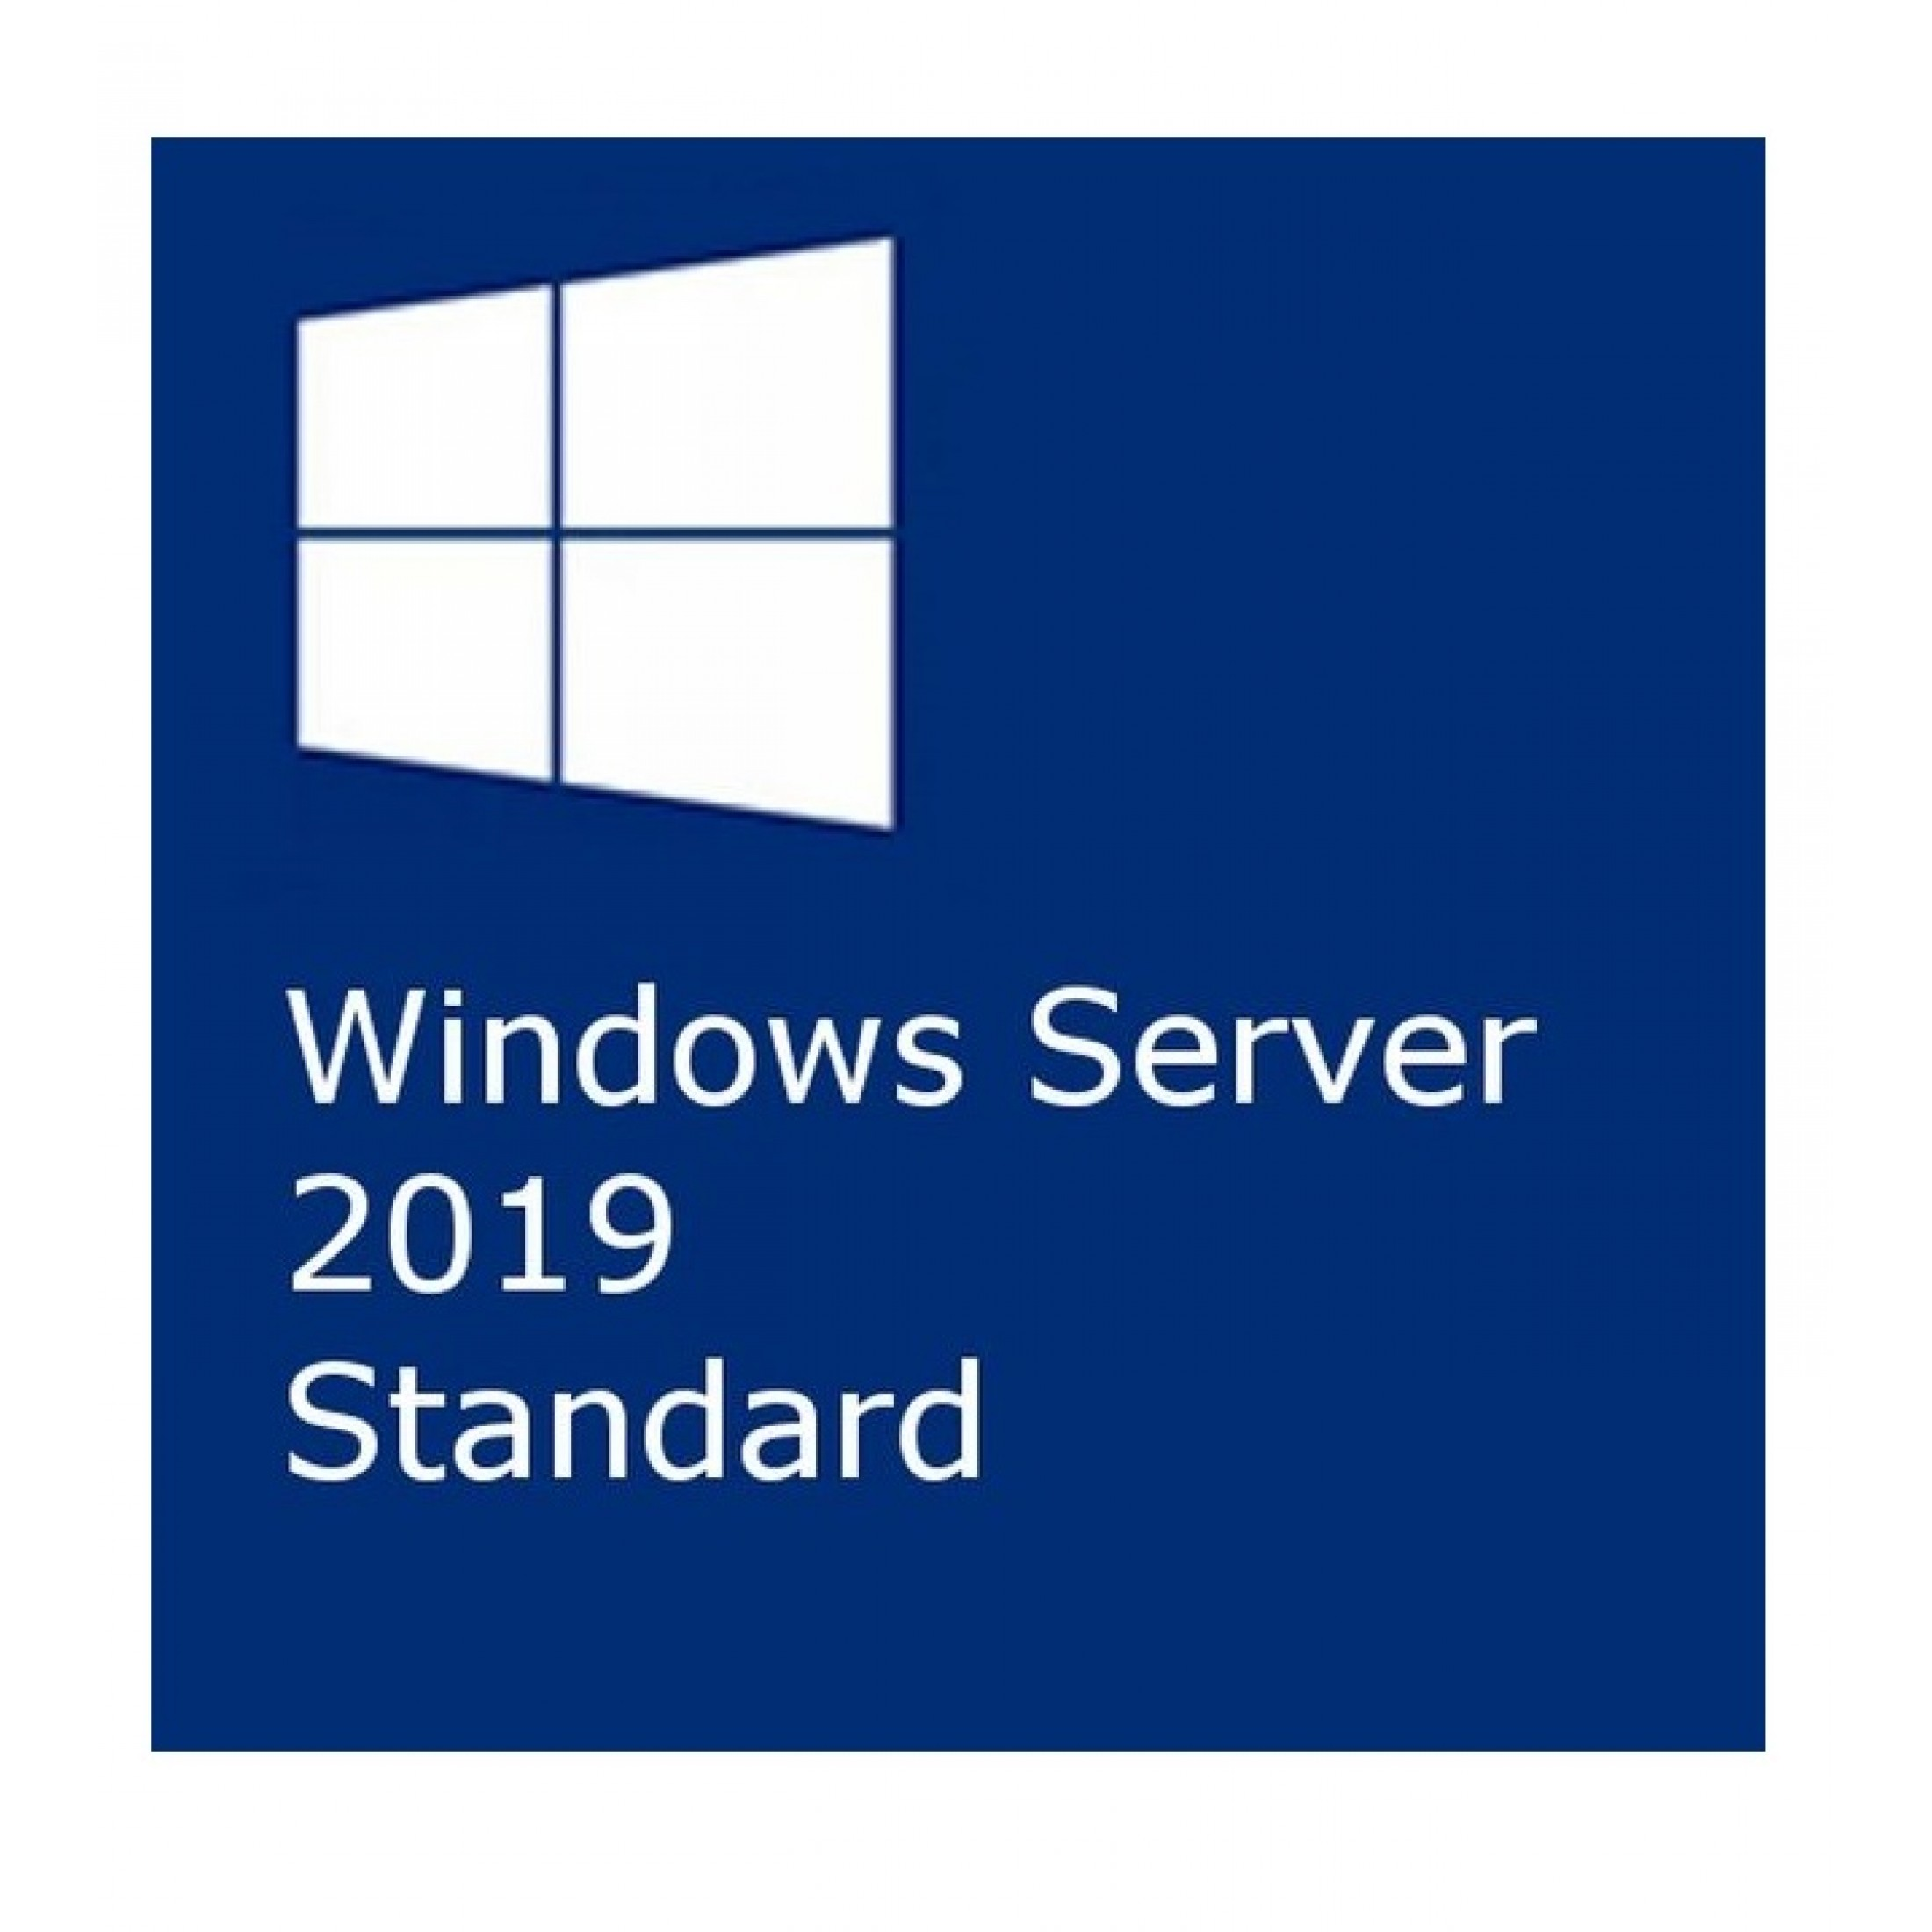 Microsoft Win Server 2019/2016 Standard Downgradekit ml ROK WM